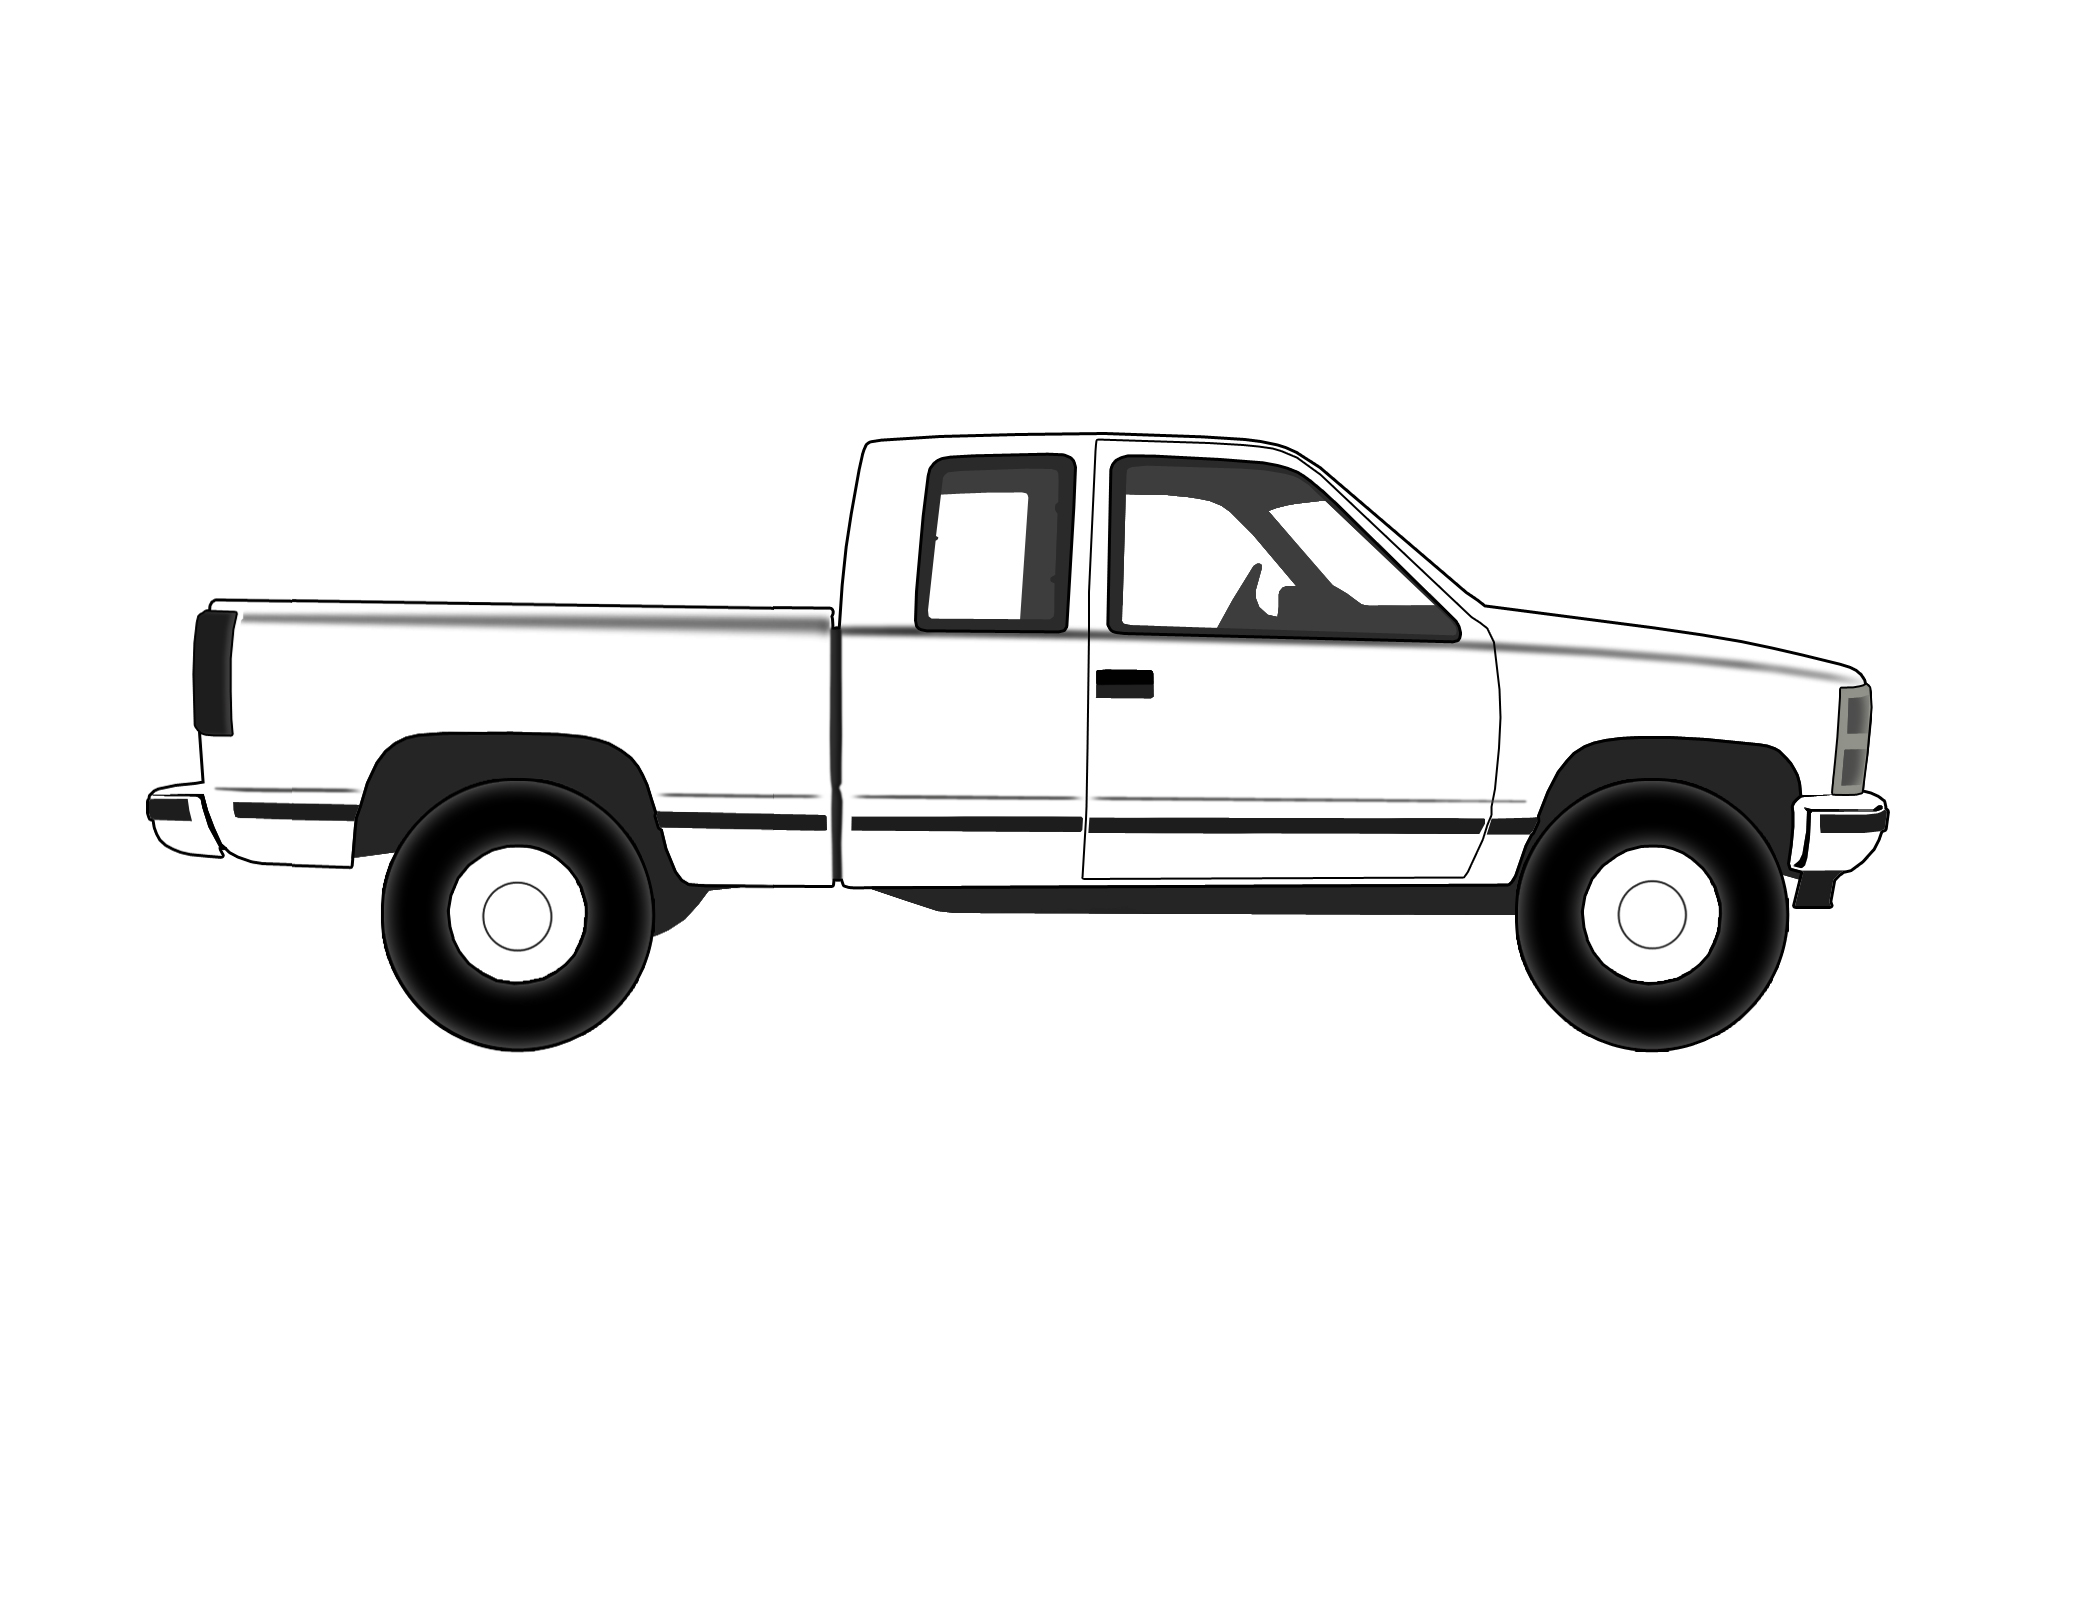 Free Old Truck Silhouette, Download Free Clip Art, Free Clip.